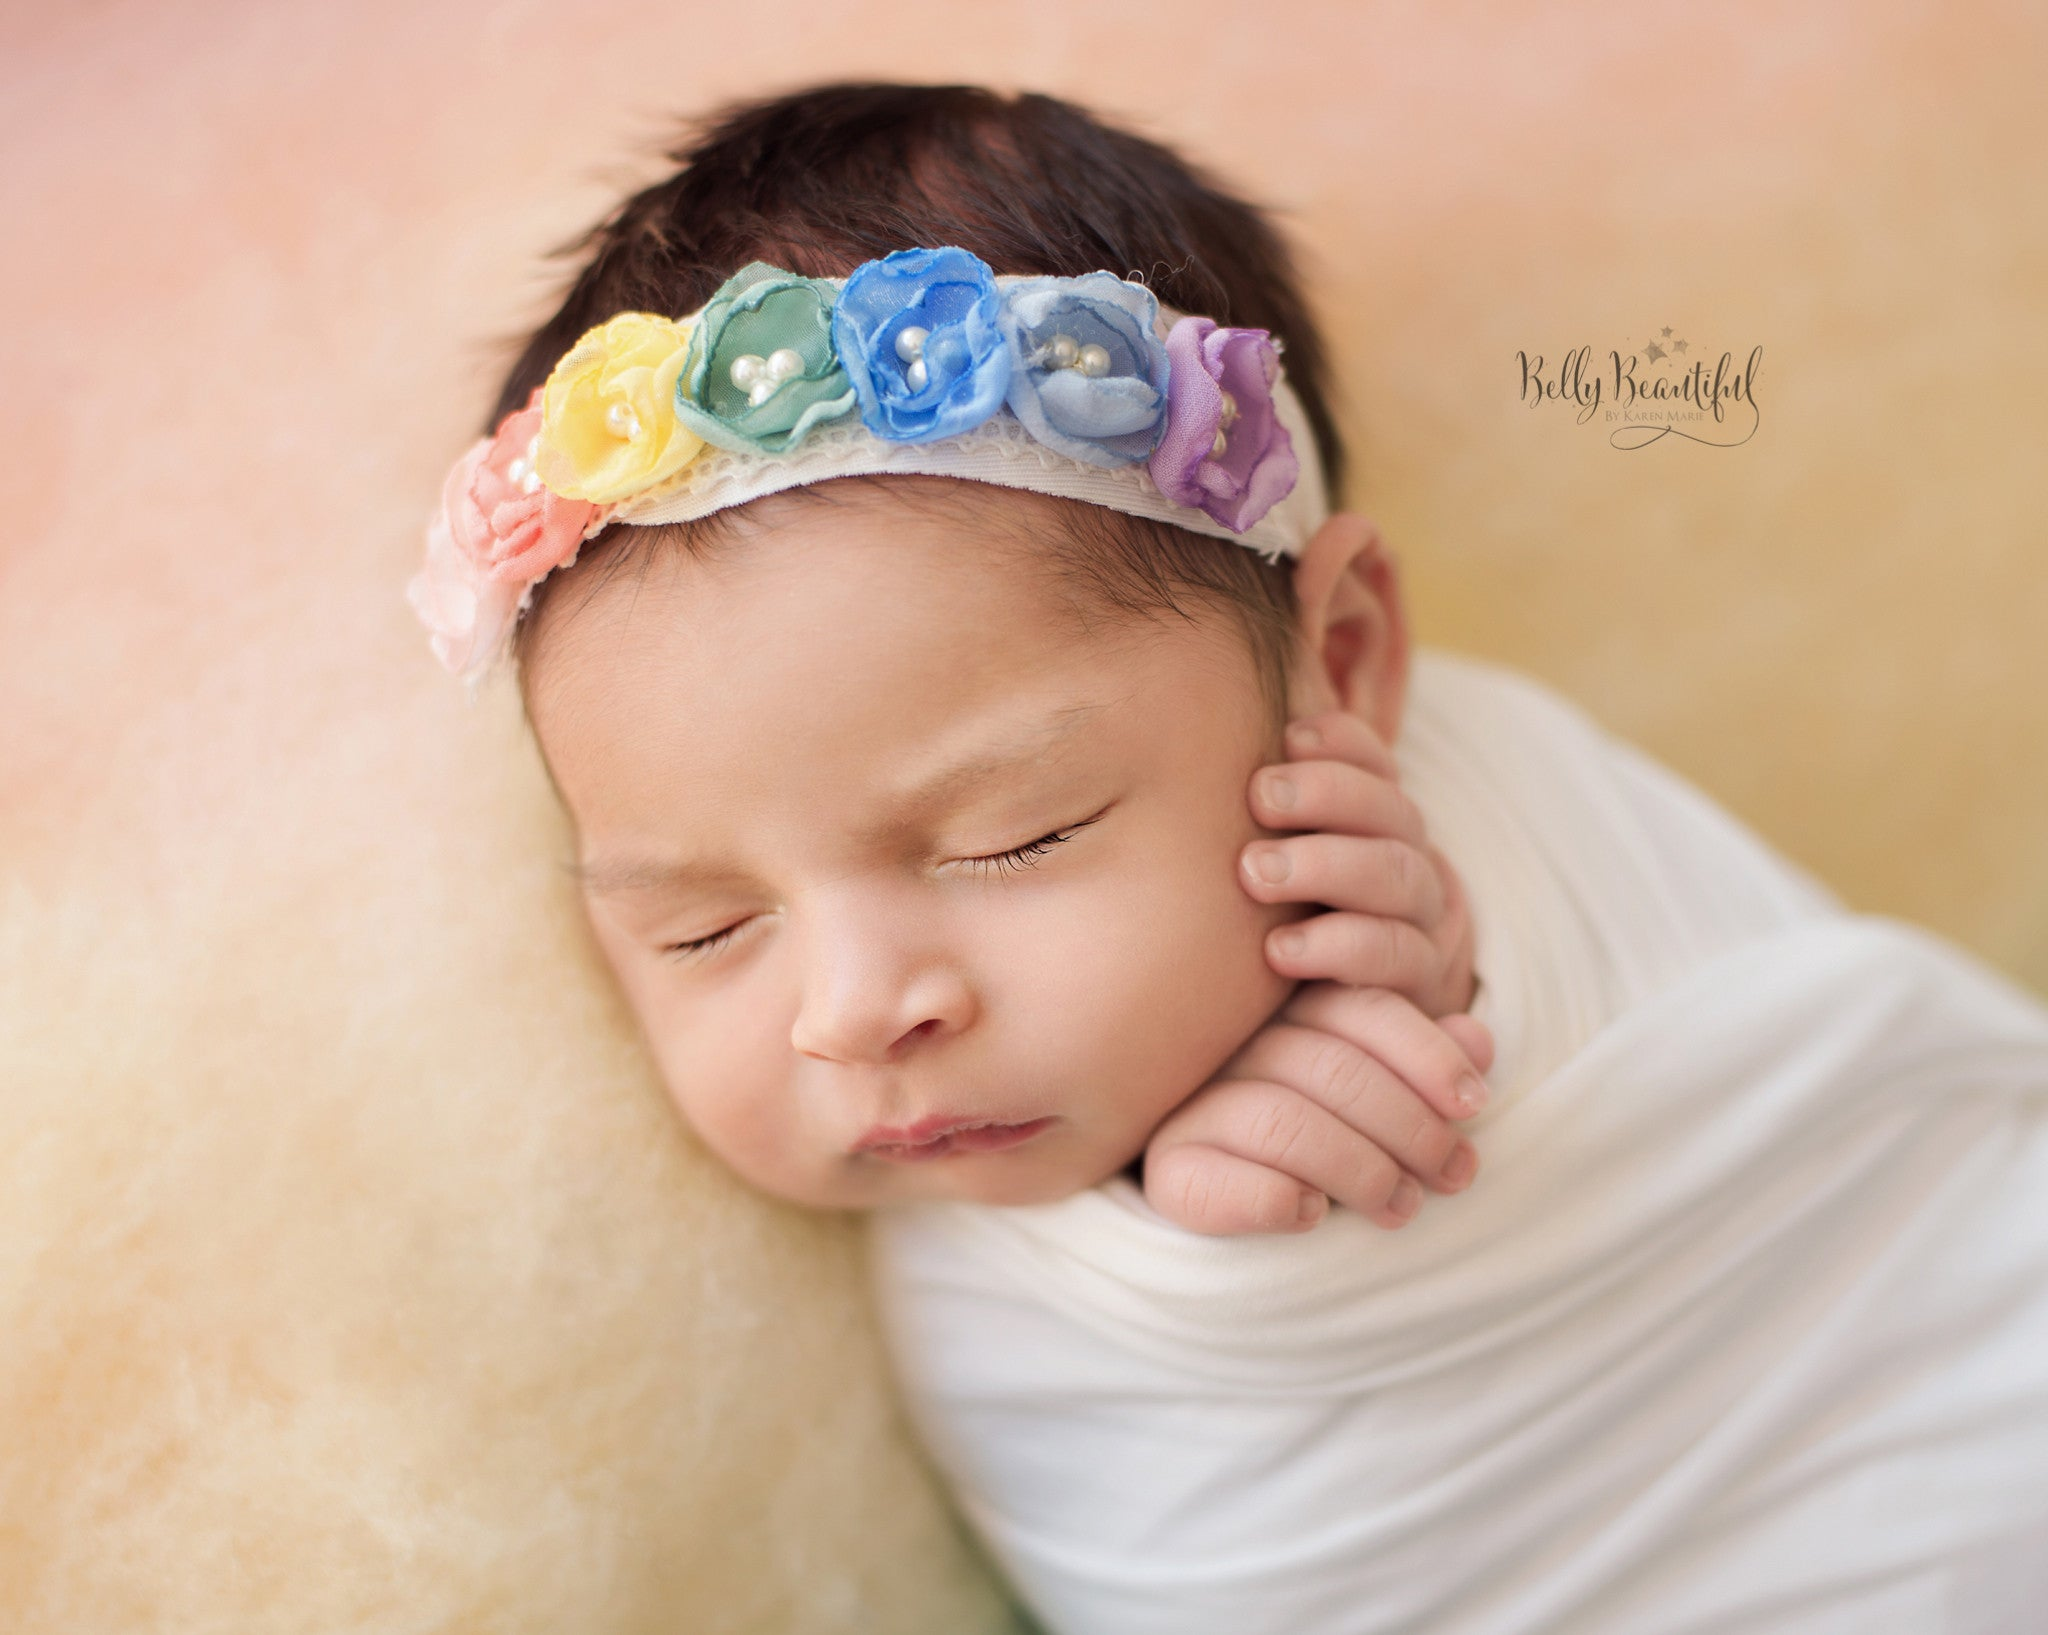 Rainee Floral Newborn Tieback {pastel tones} • Rainbow Baby Line • Newborn Rainbow Floral Crown • Hope Floral Crown • Bohemian Crown • Rainbow Baby Crown | READY TO SHIP • by Sew Trendy